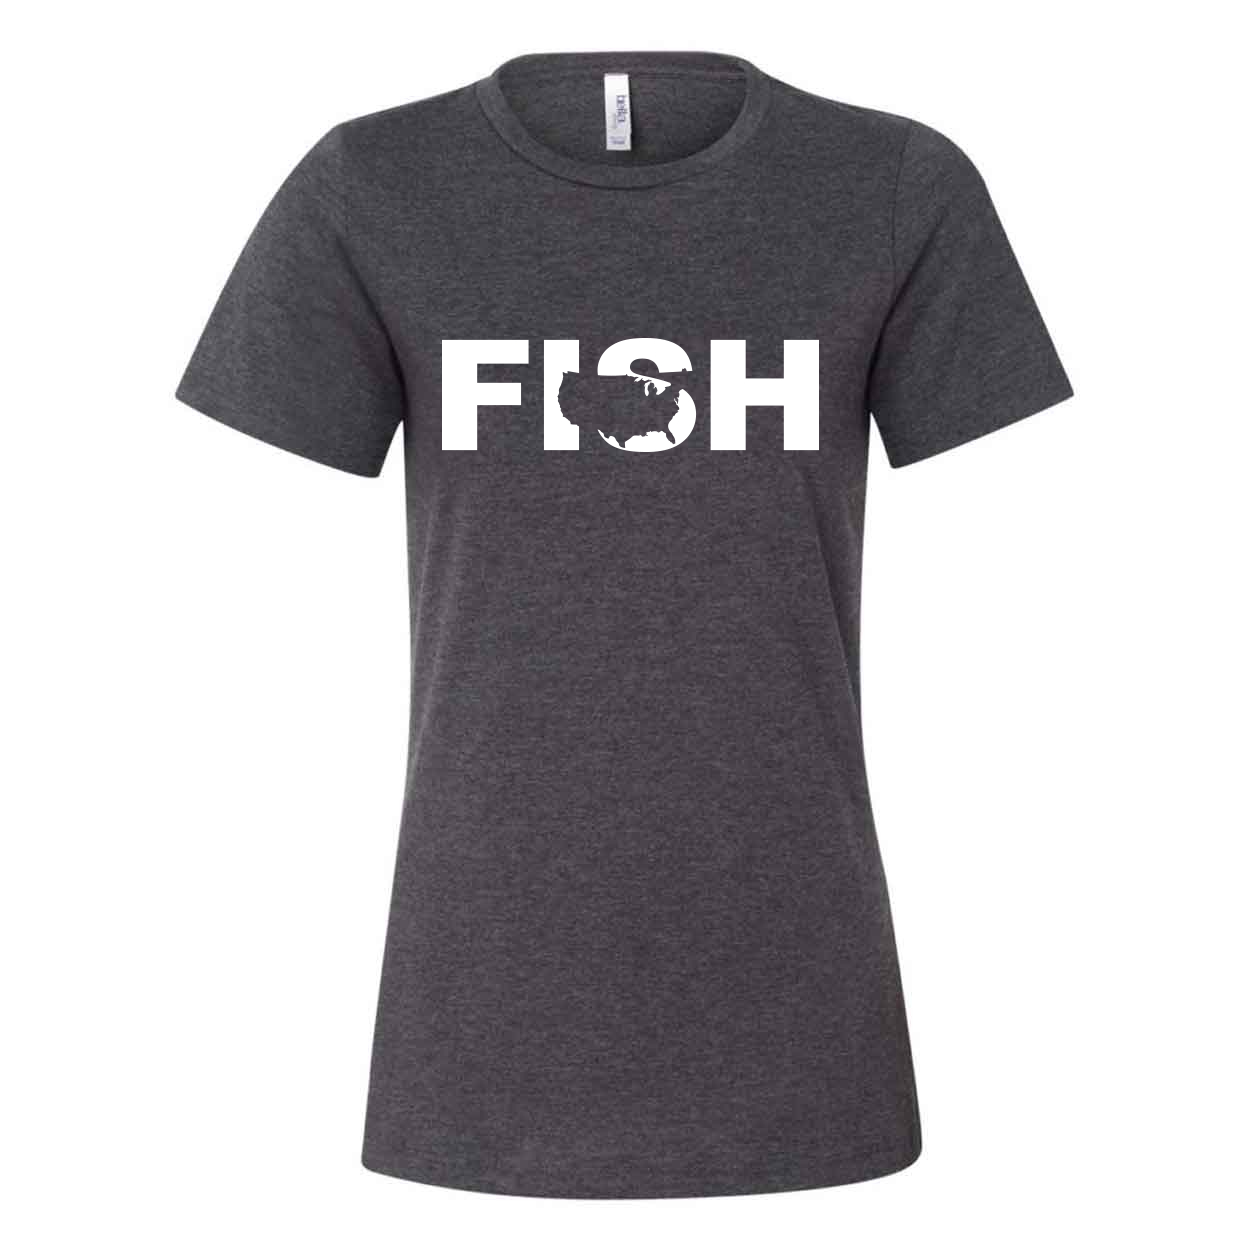 Fish United States Classic Women's Relaxed Jersey T-Shirt Dark Gray Heather (White Logo)